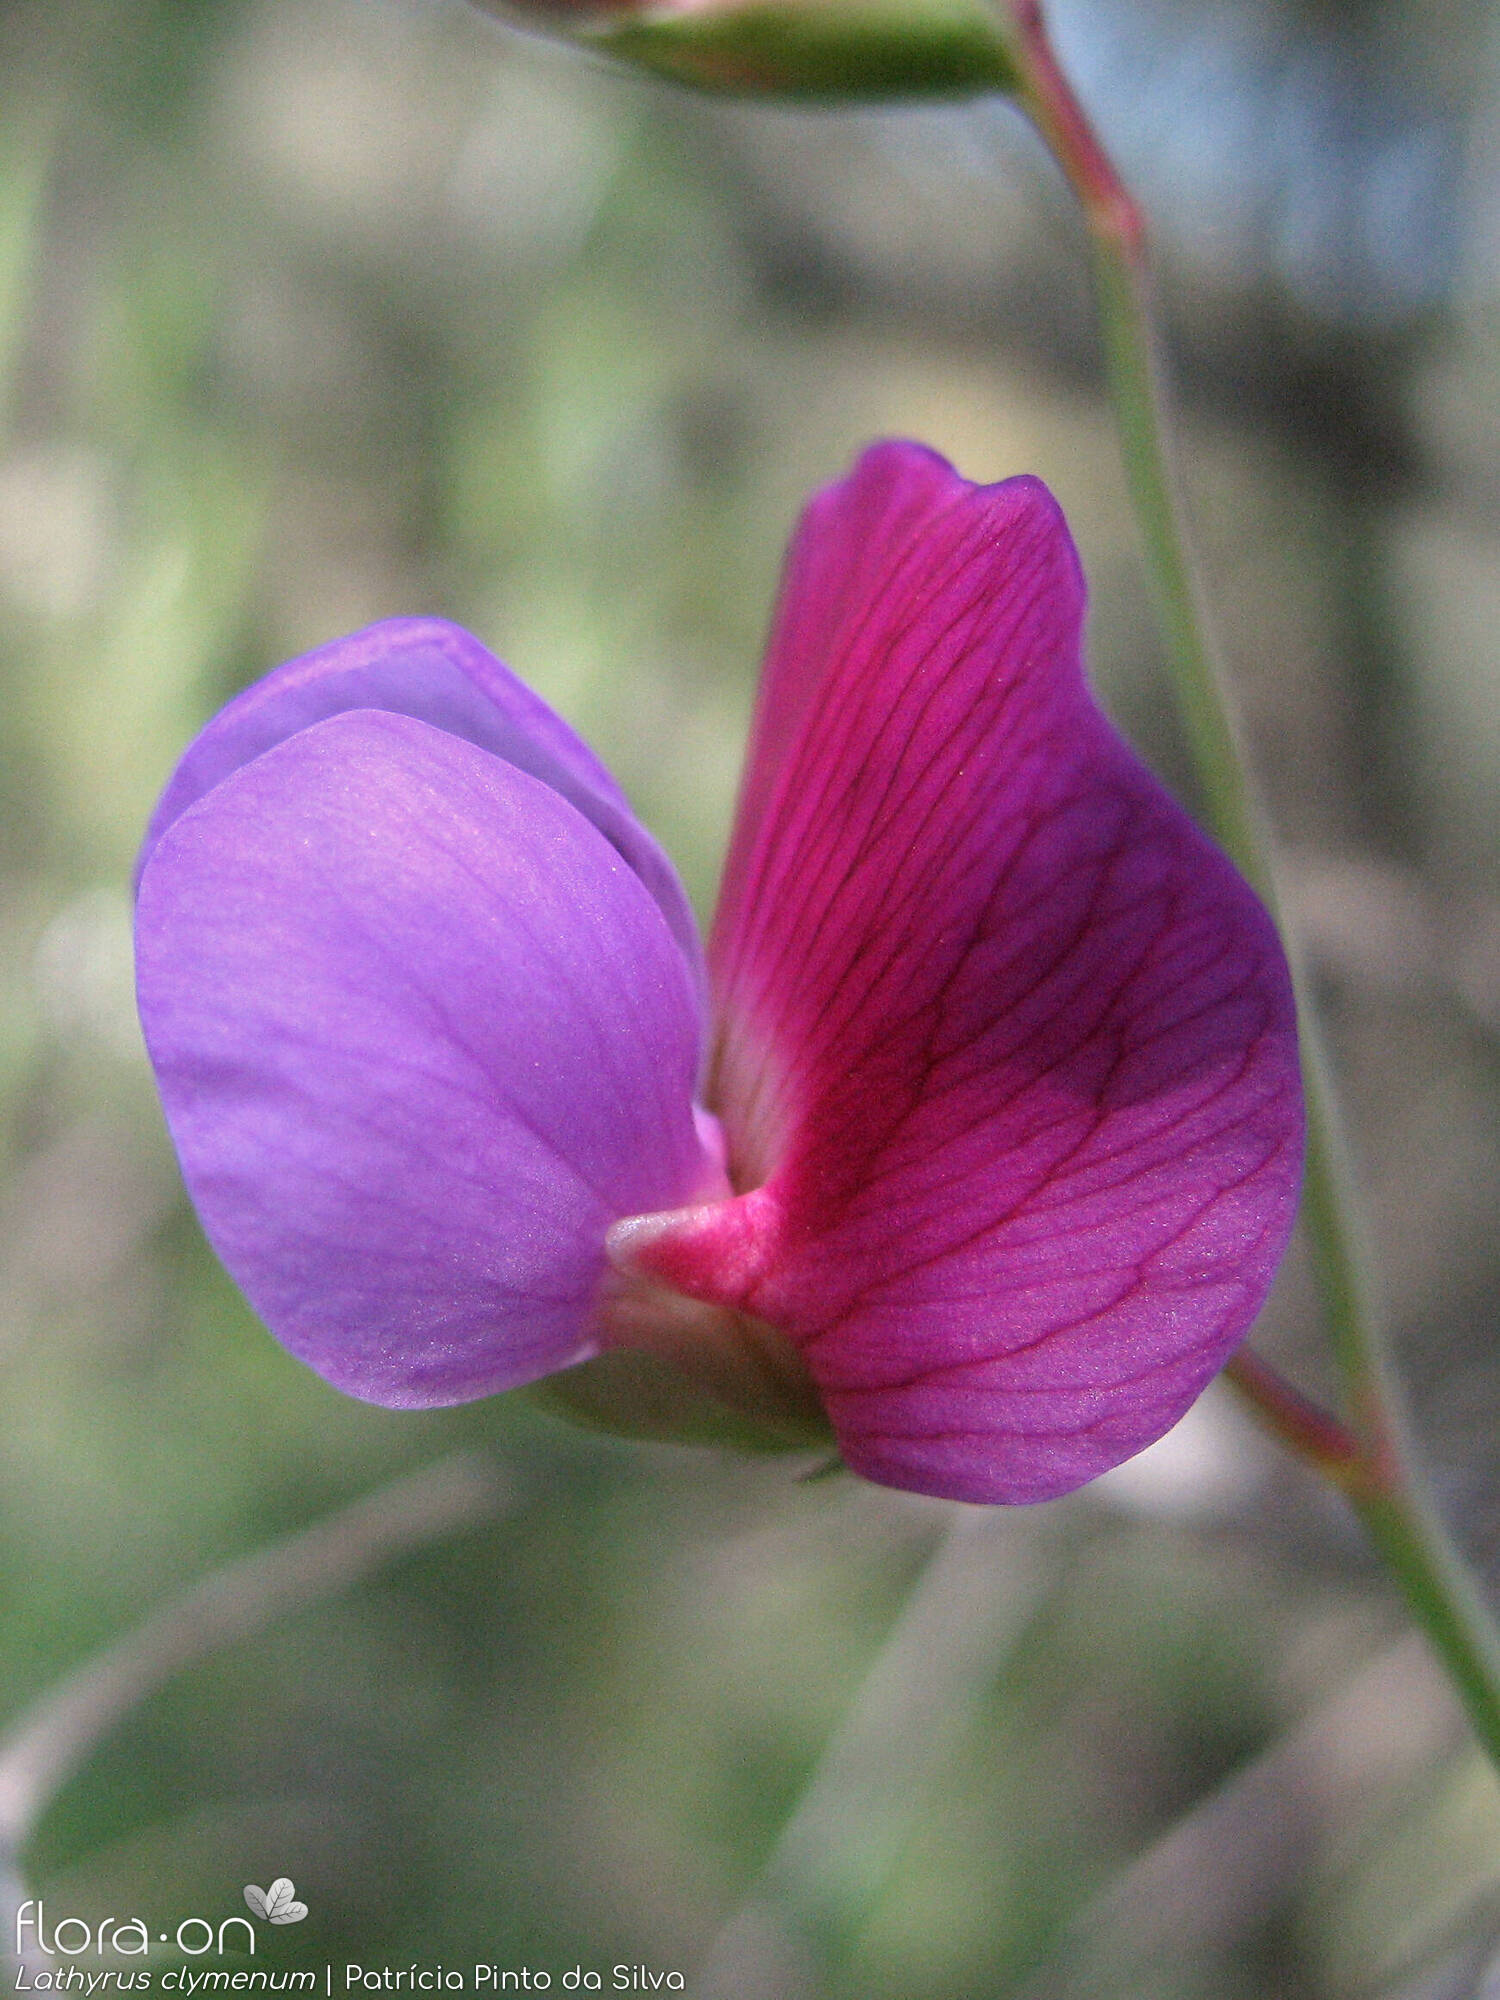 Lathyrus clymenum - Flor (close-up) | Patrícia Pinto Silva; CC BY-NC 4.0